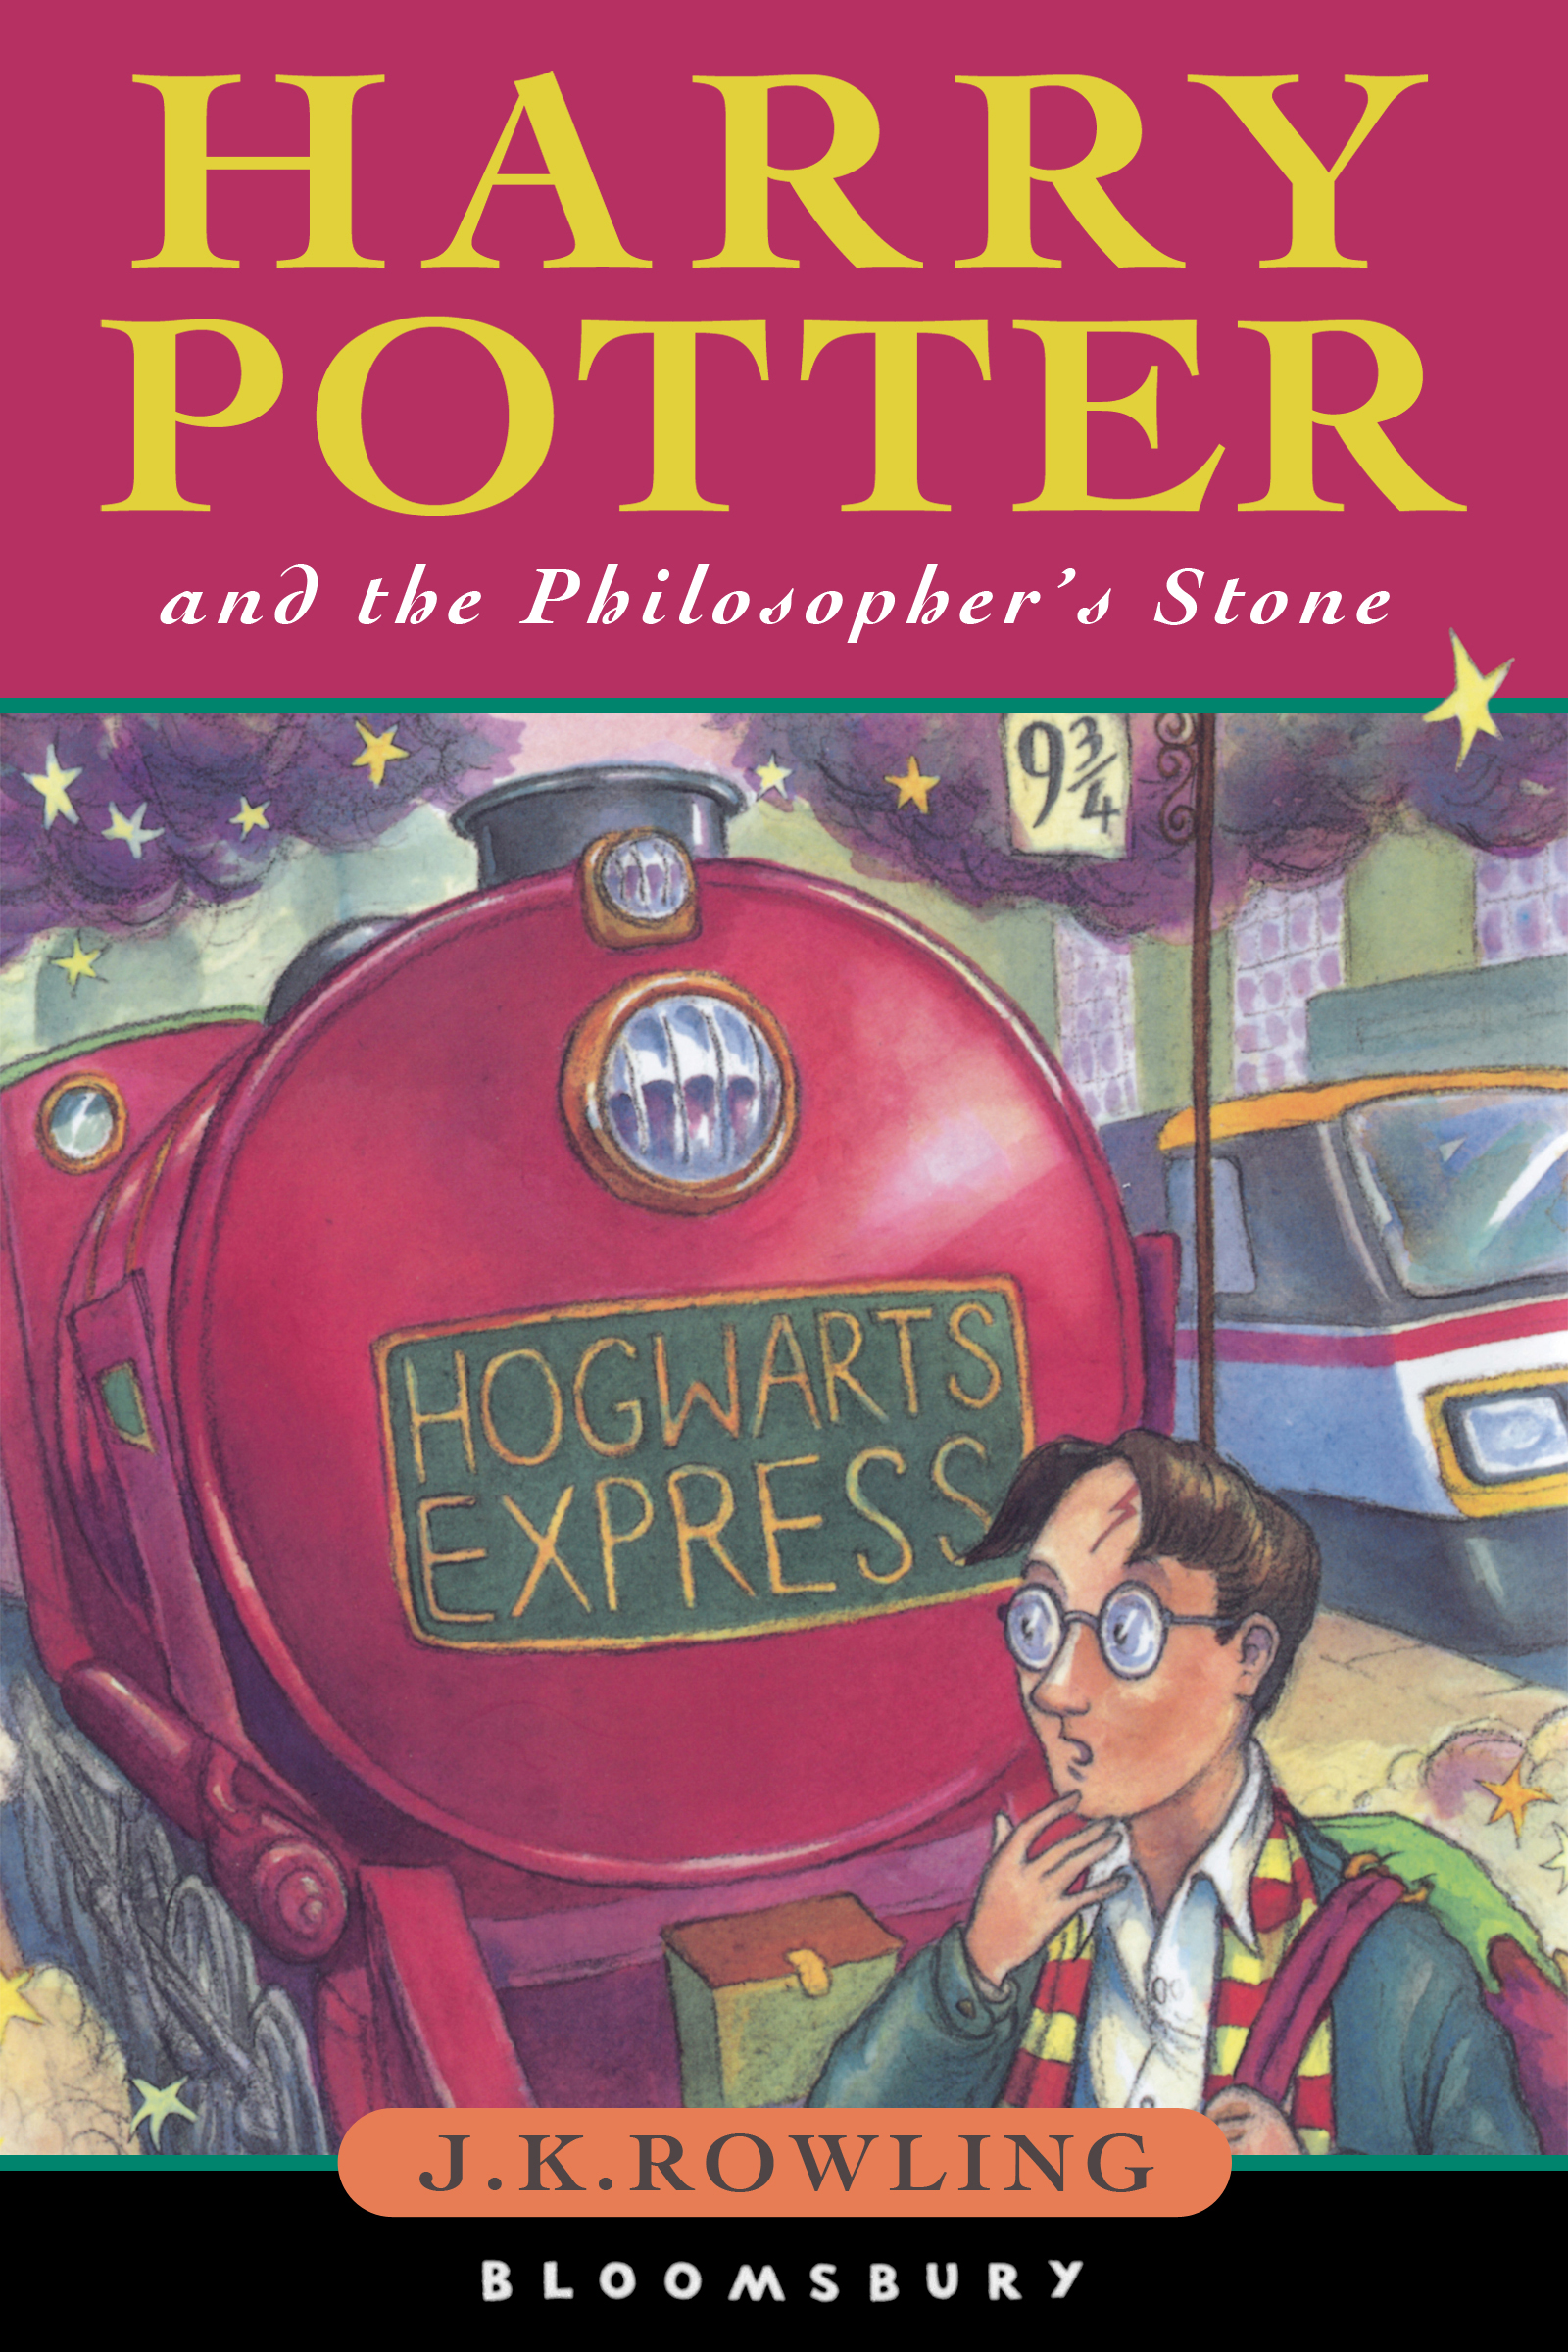 Image result for harry potter book